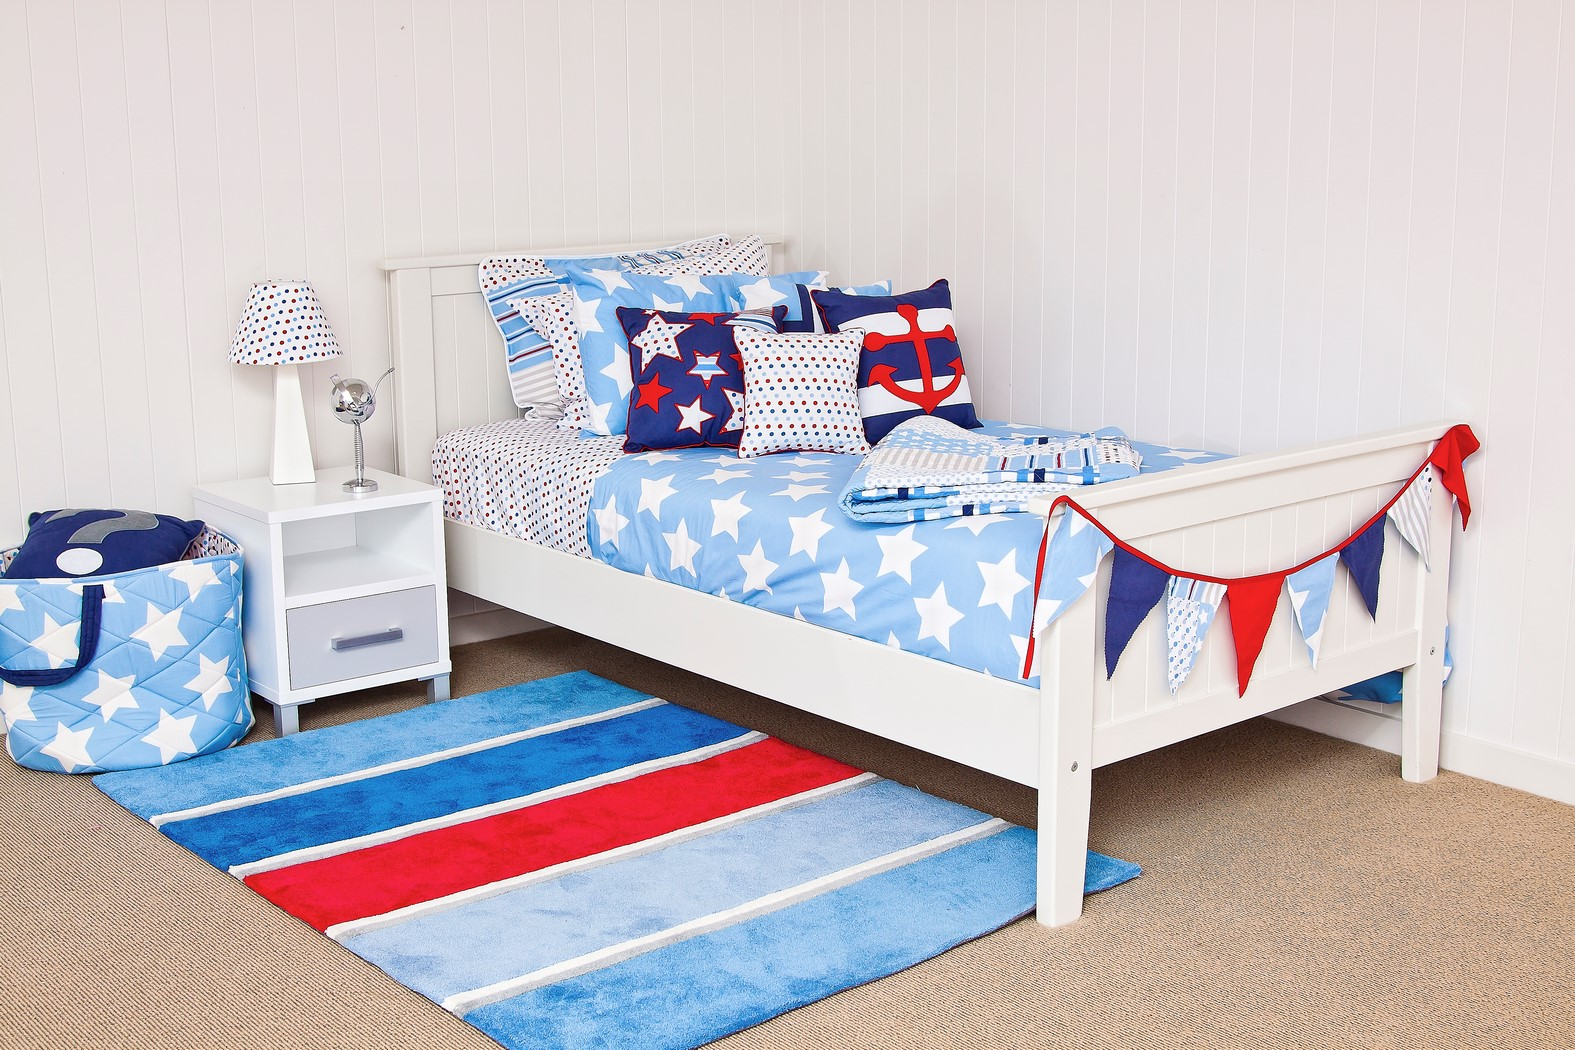 Wills star quilt cover, spot sheeting, Nautical floor rug & cushions